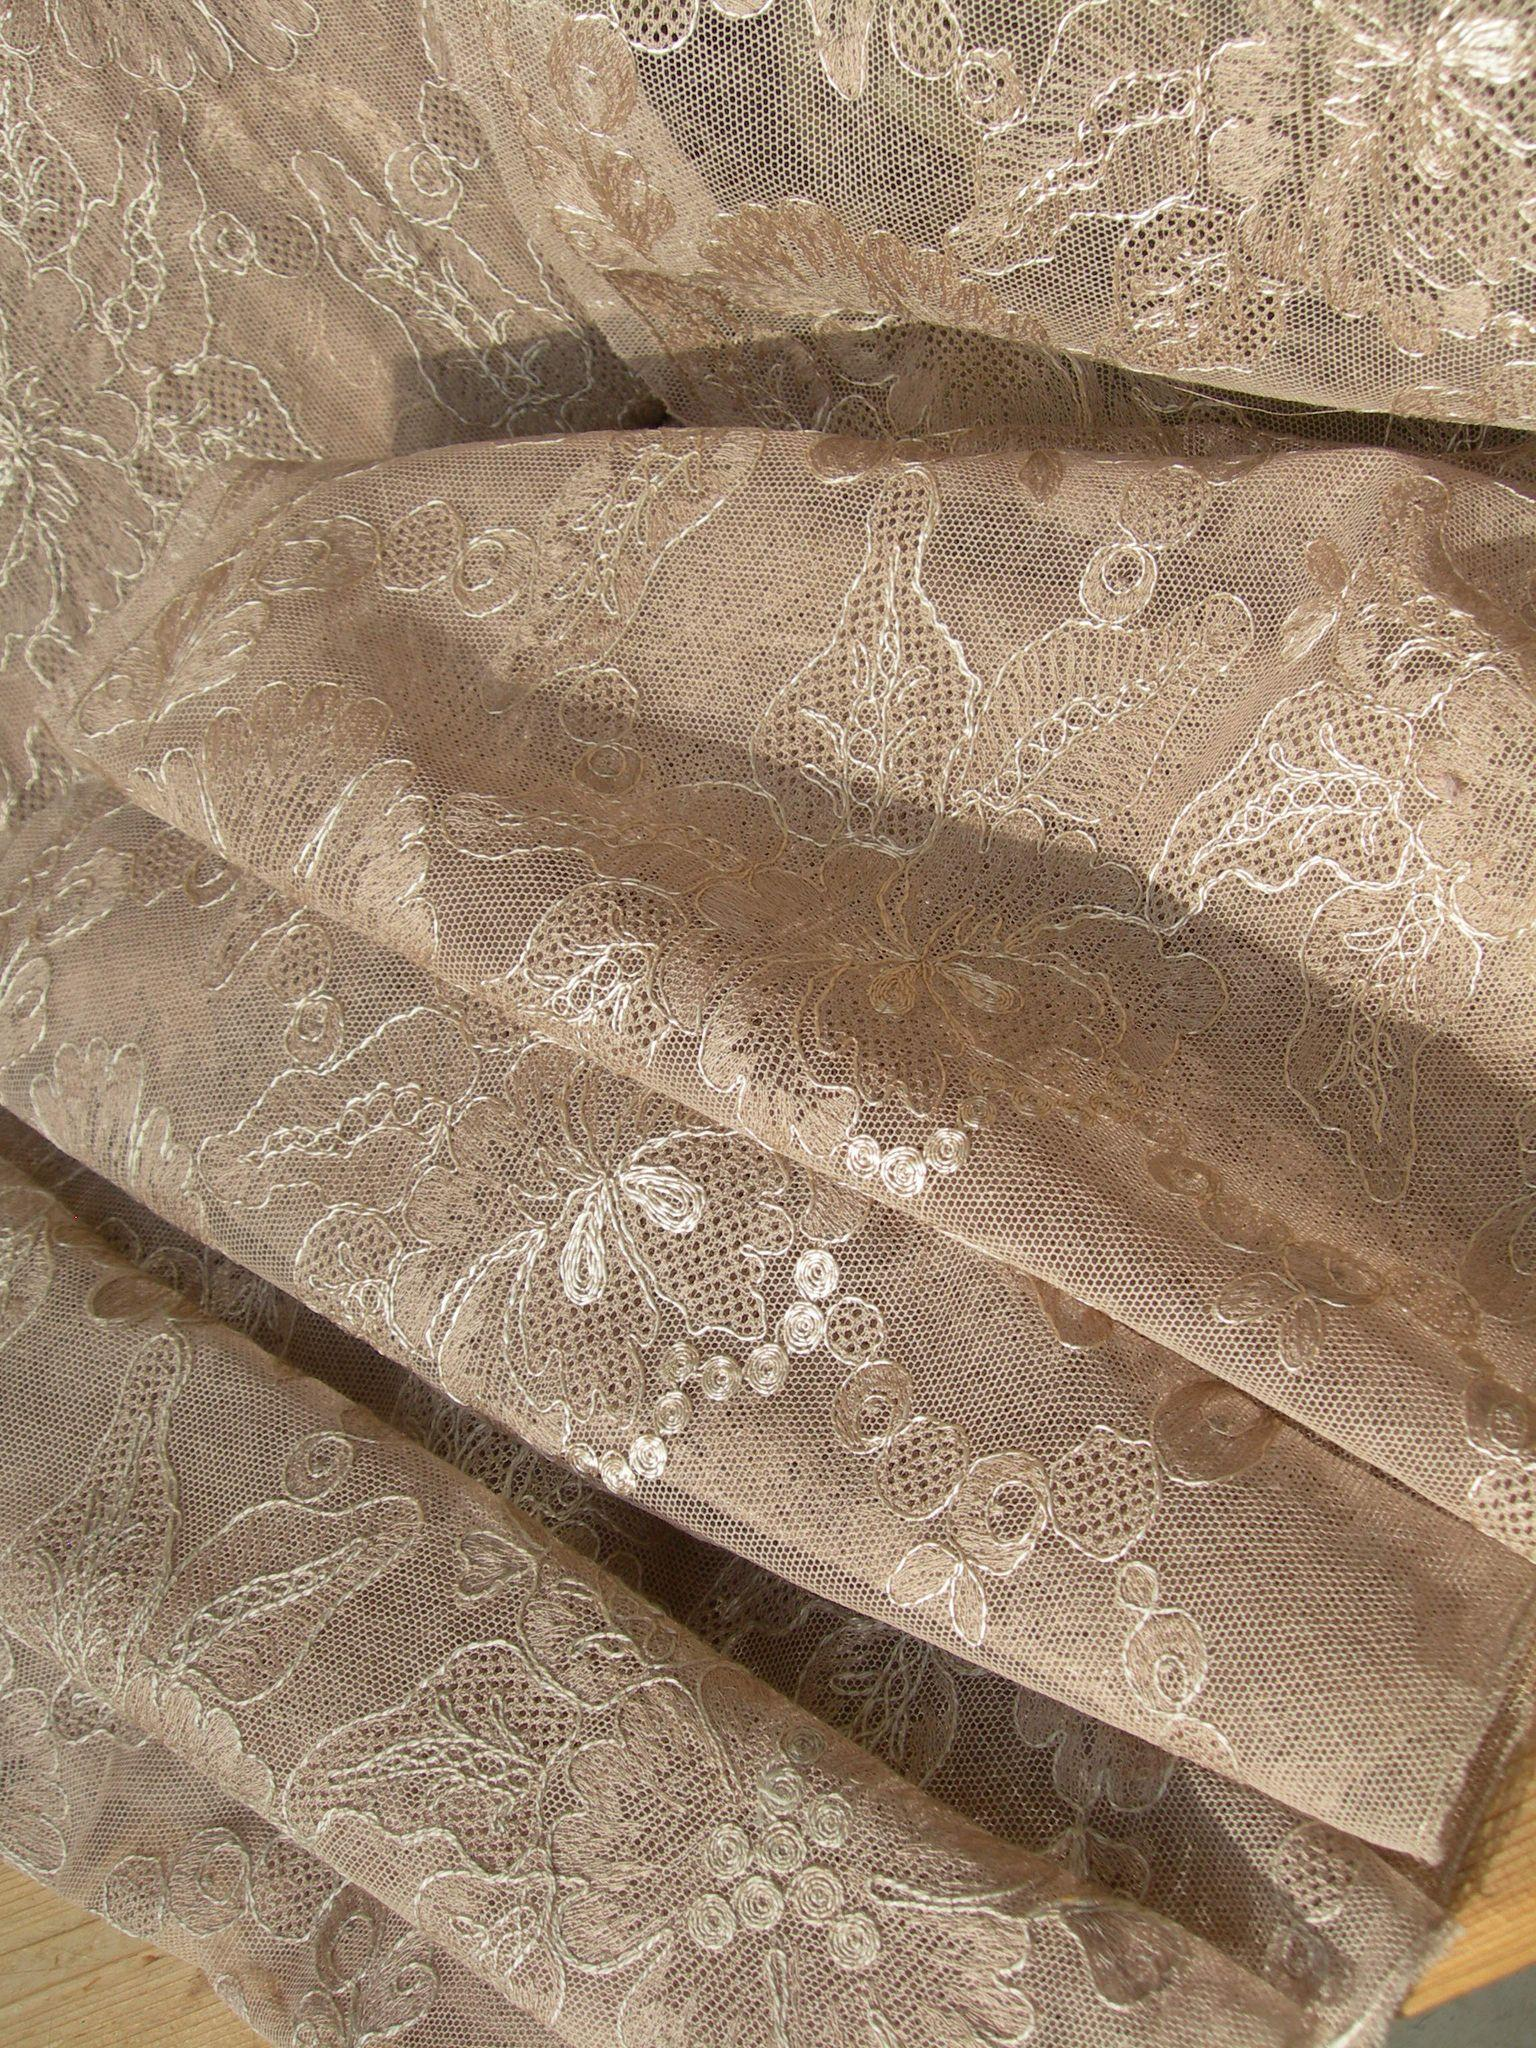 Long, wide length vintage 1920s French embroidered tulle lingerie lace 7 metres (275 inches)